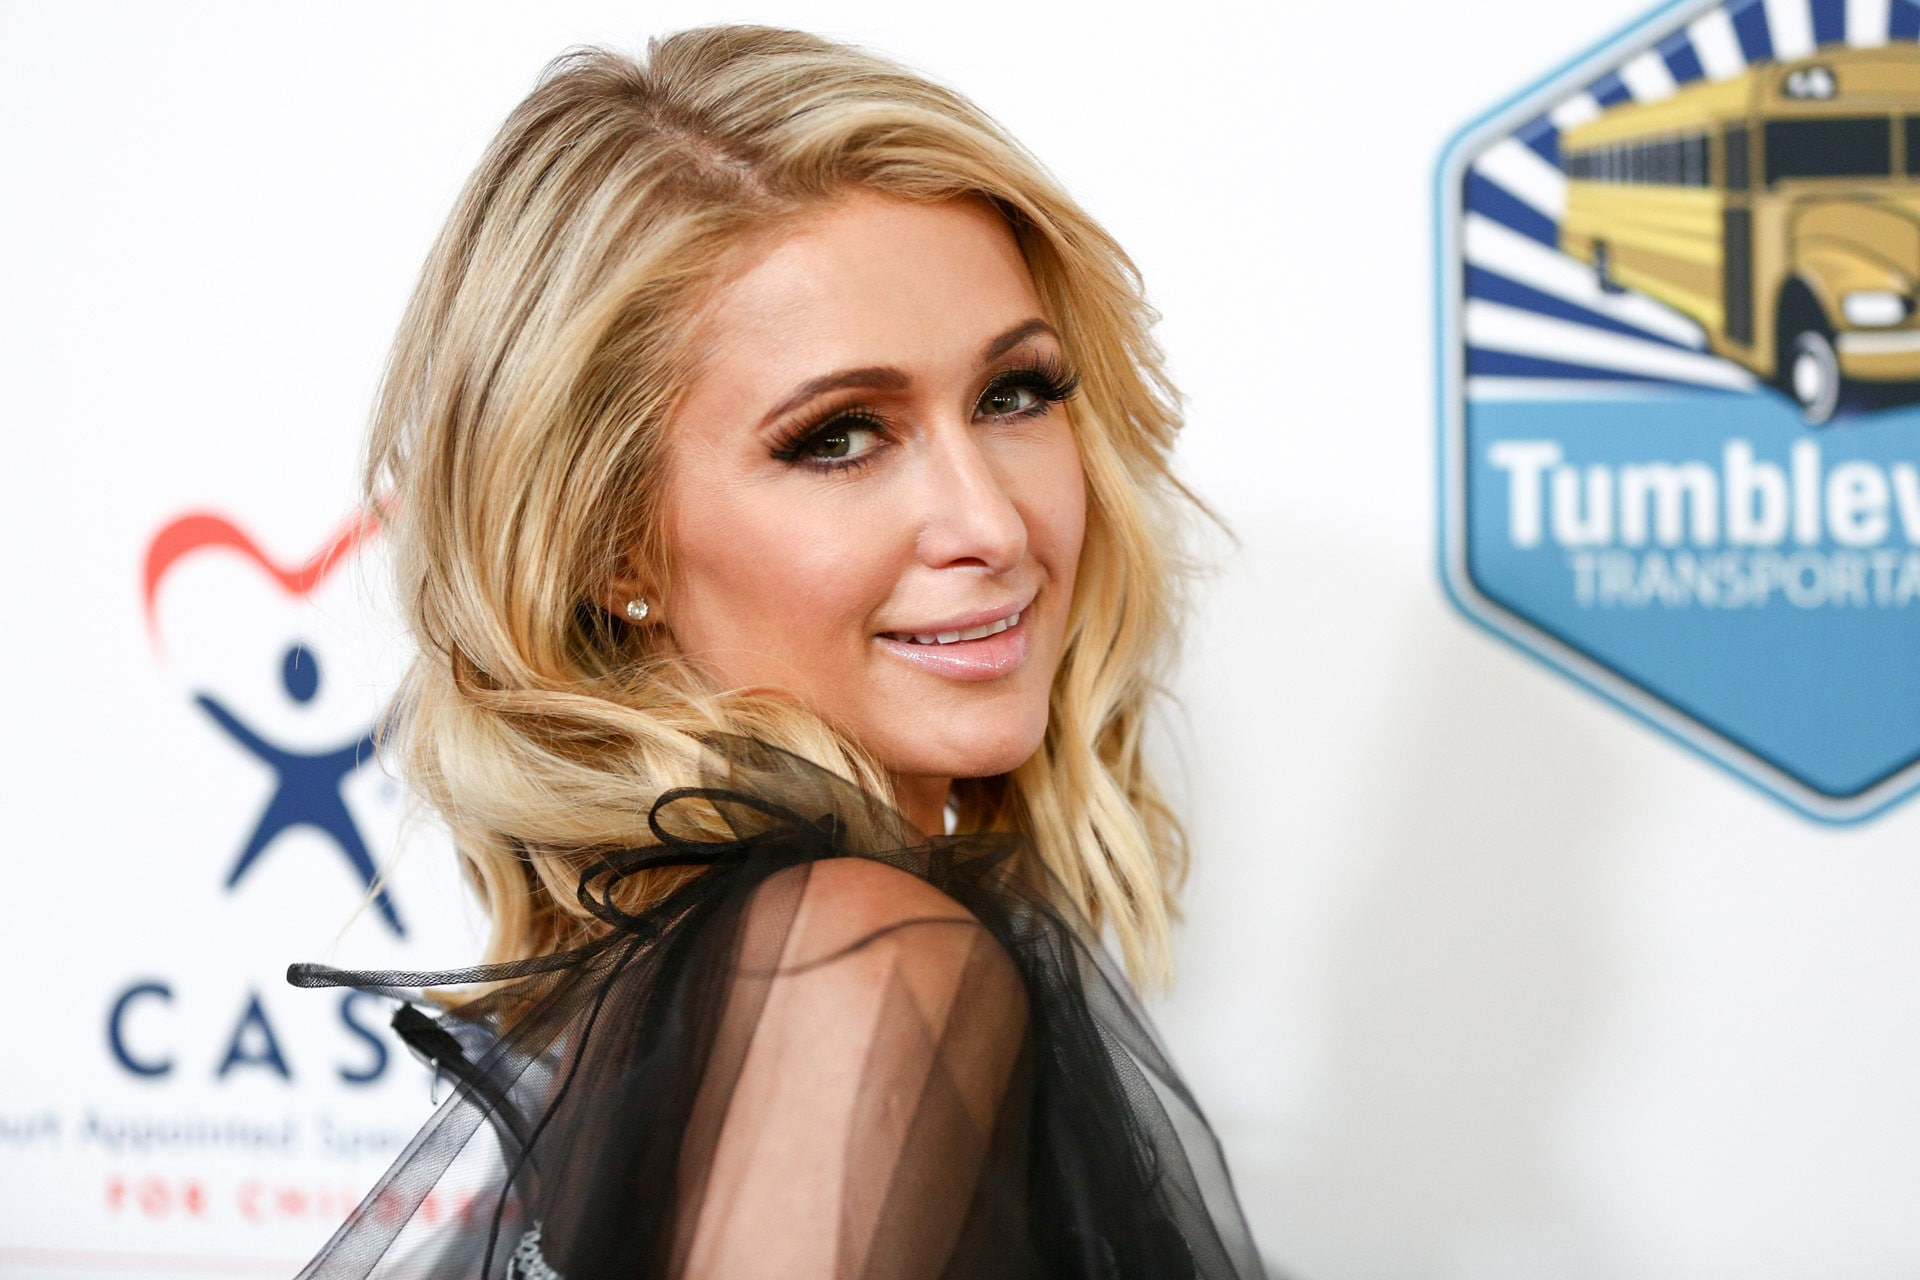 Paris Hilton says it gets lonely being Paris Hilton